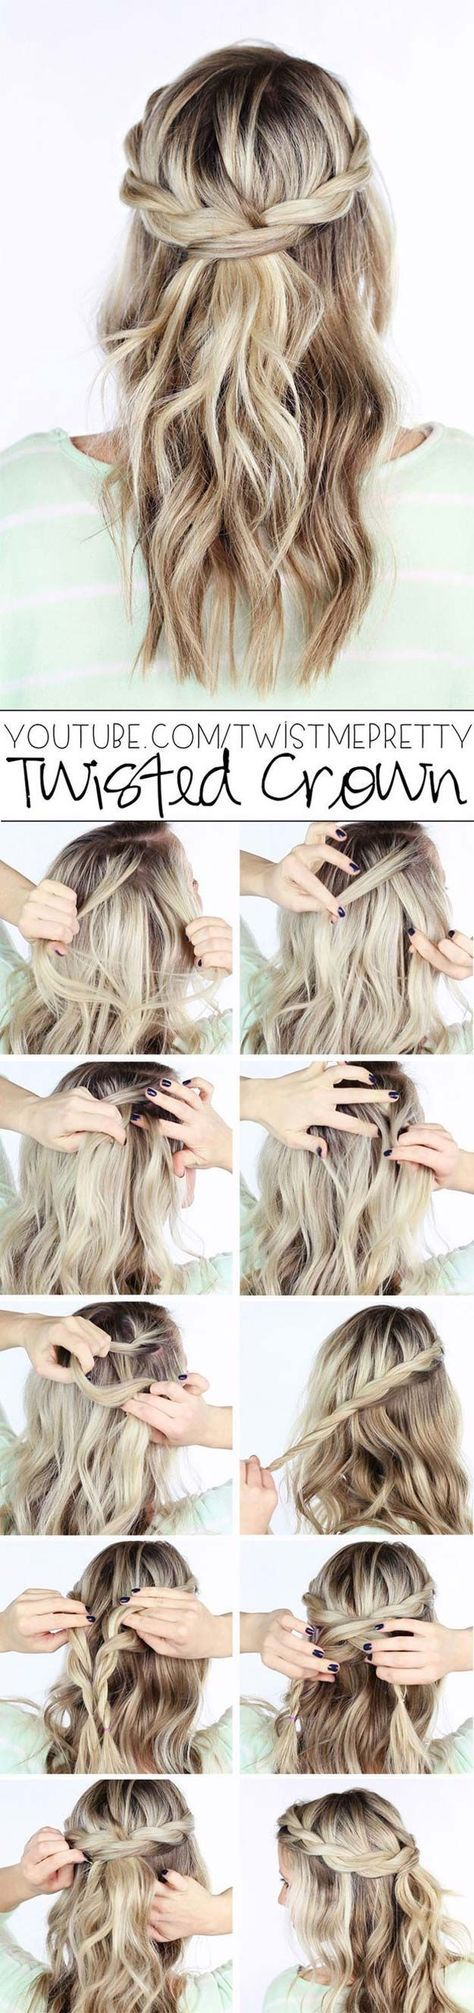 Cool and easy diy hairstyles twisted crown braid quick ideas for back to school styles medium short long hair fun tips best step also that real people can actually do at home rh ar pinterest